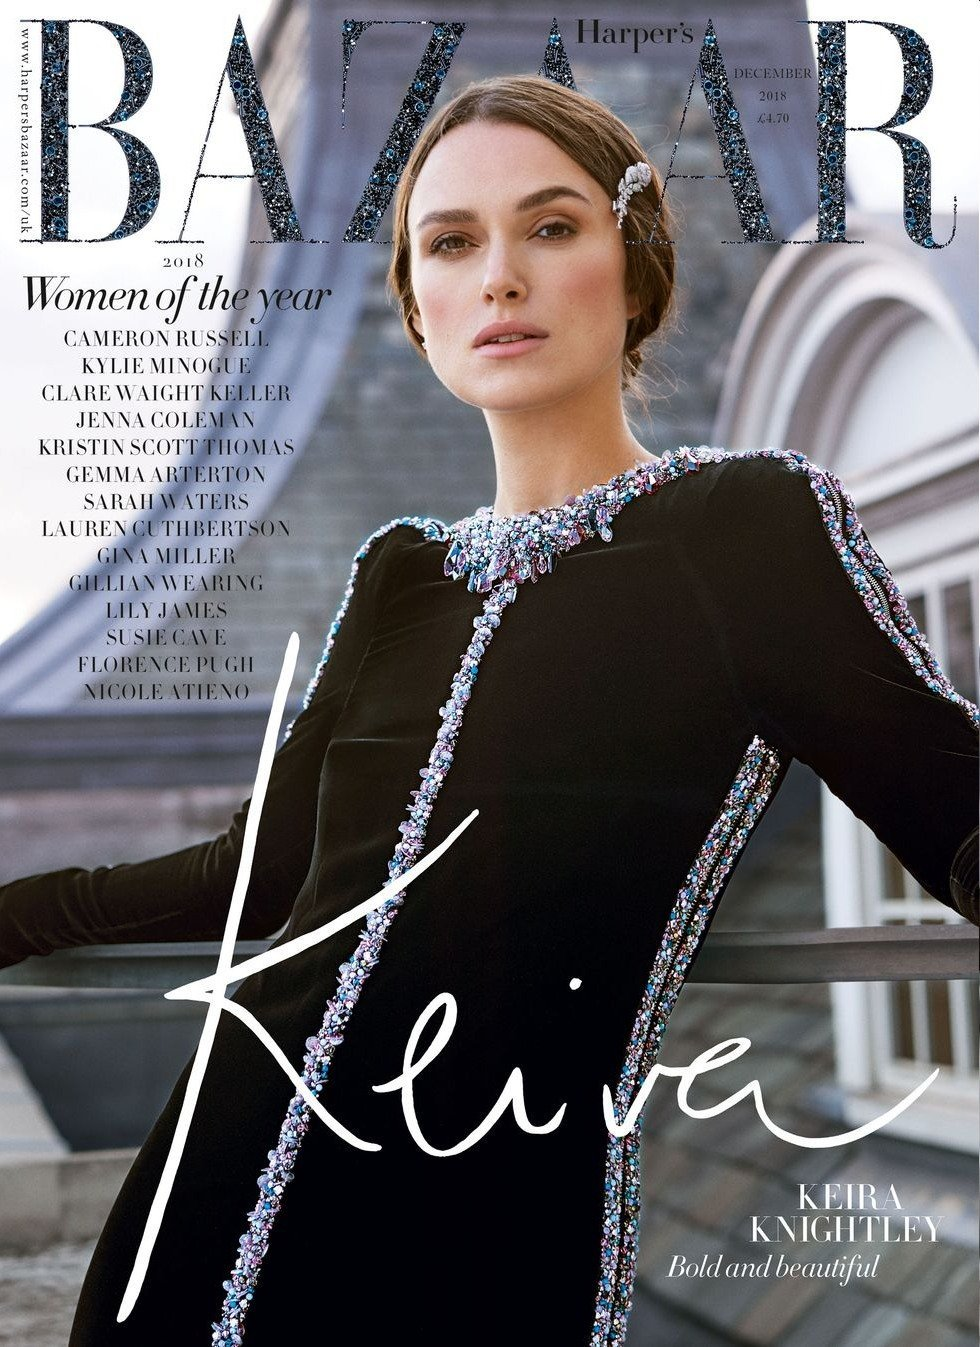 Keira Knightley feels strongly about working motherhood to keep a 'sense of identity'